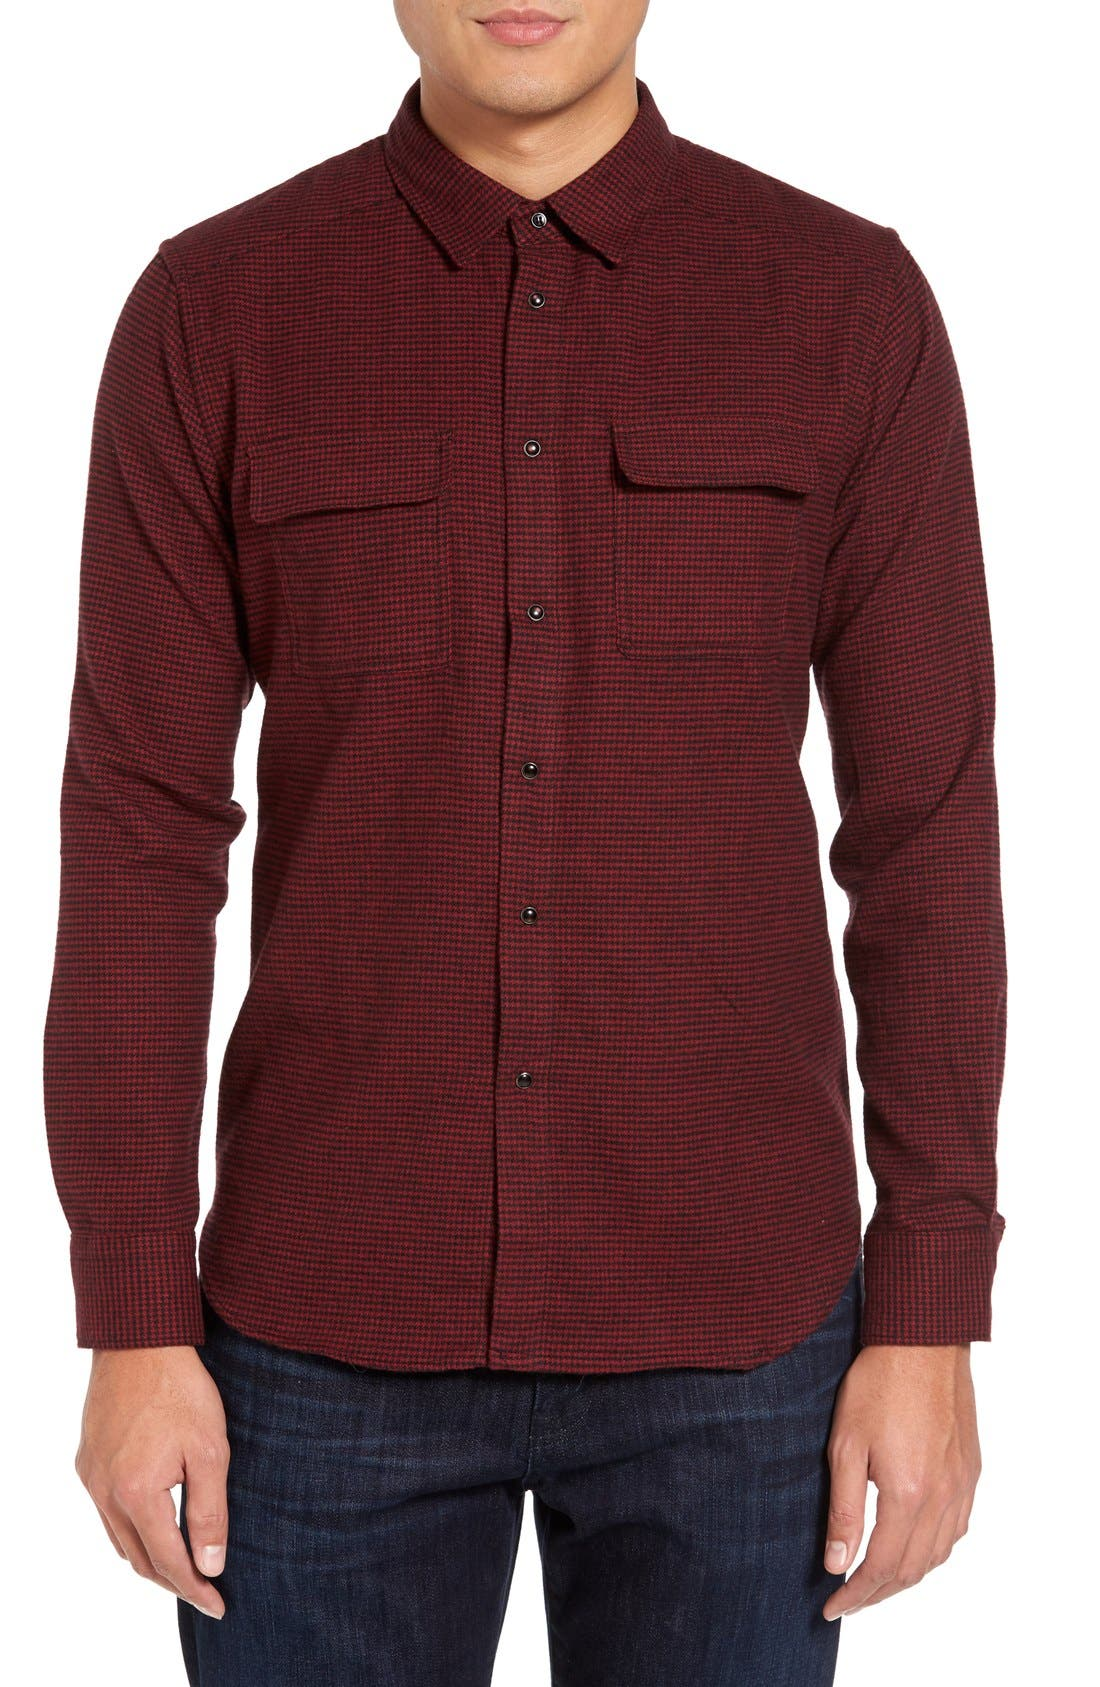 Main Image - Slate & Stone Parker Slim Fit Houndstooth Flannel Shirt